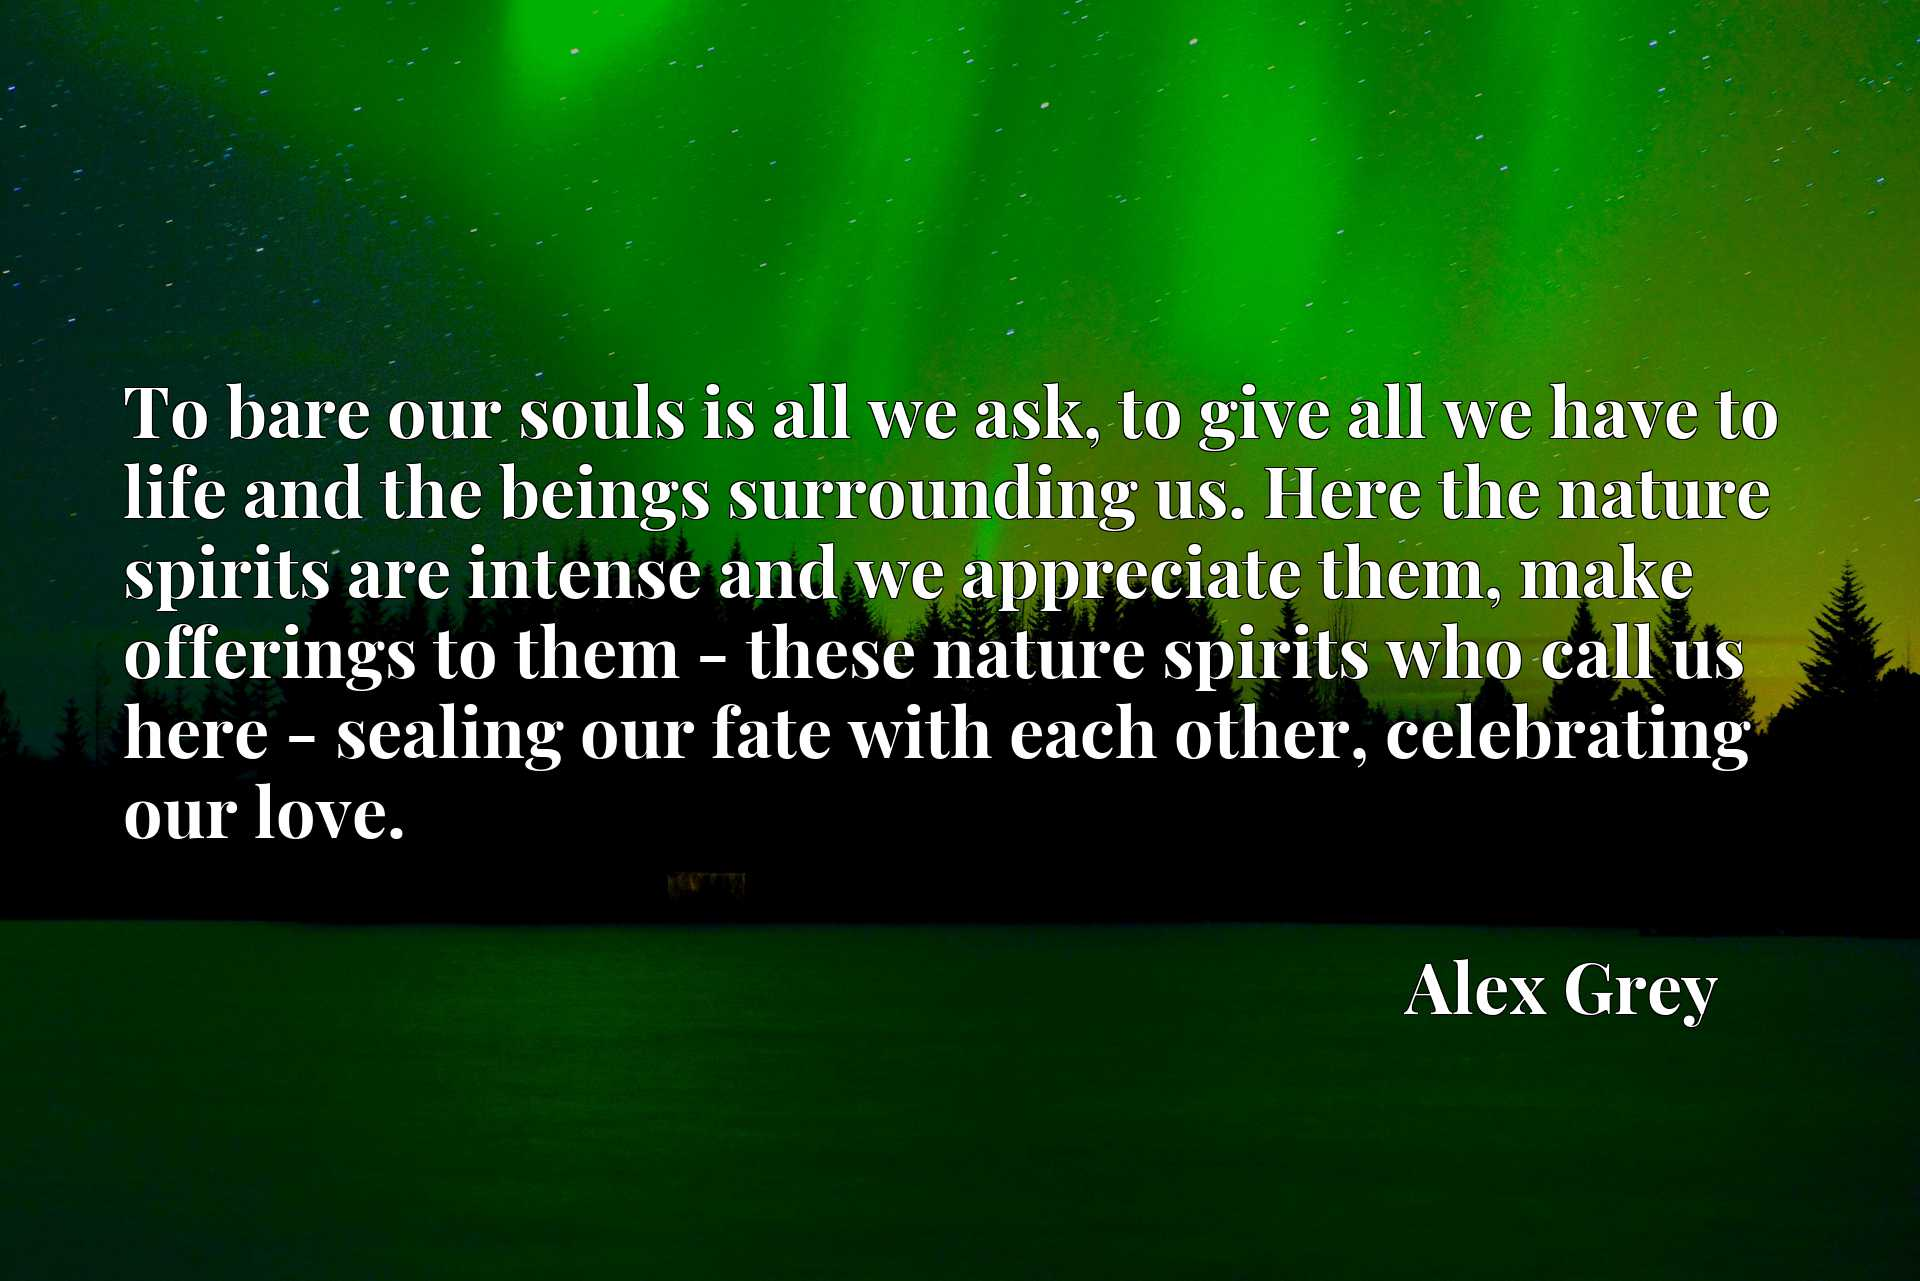 Quote Picture :To bare our souls is all we ask, to give all we have to life and the beings surrounding us. Here the nature spirits are intense and we appreciate them, make offerings to them - these nature spirits who call us here - sealing our fate with each other, celebrating our love.